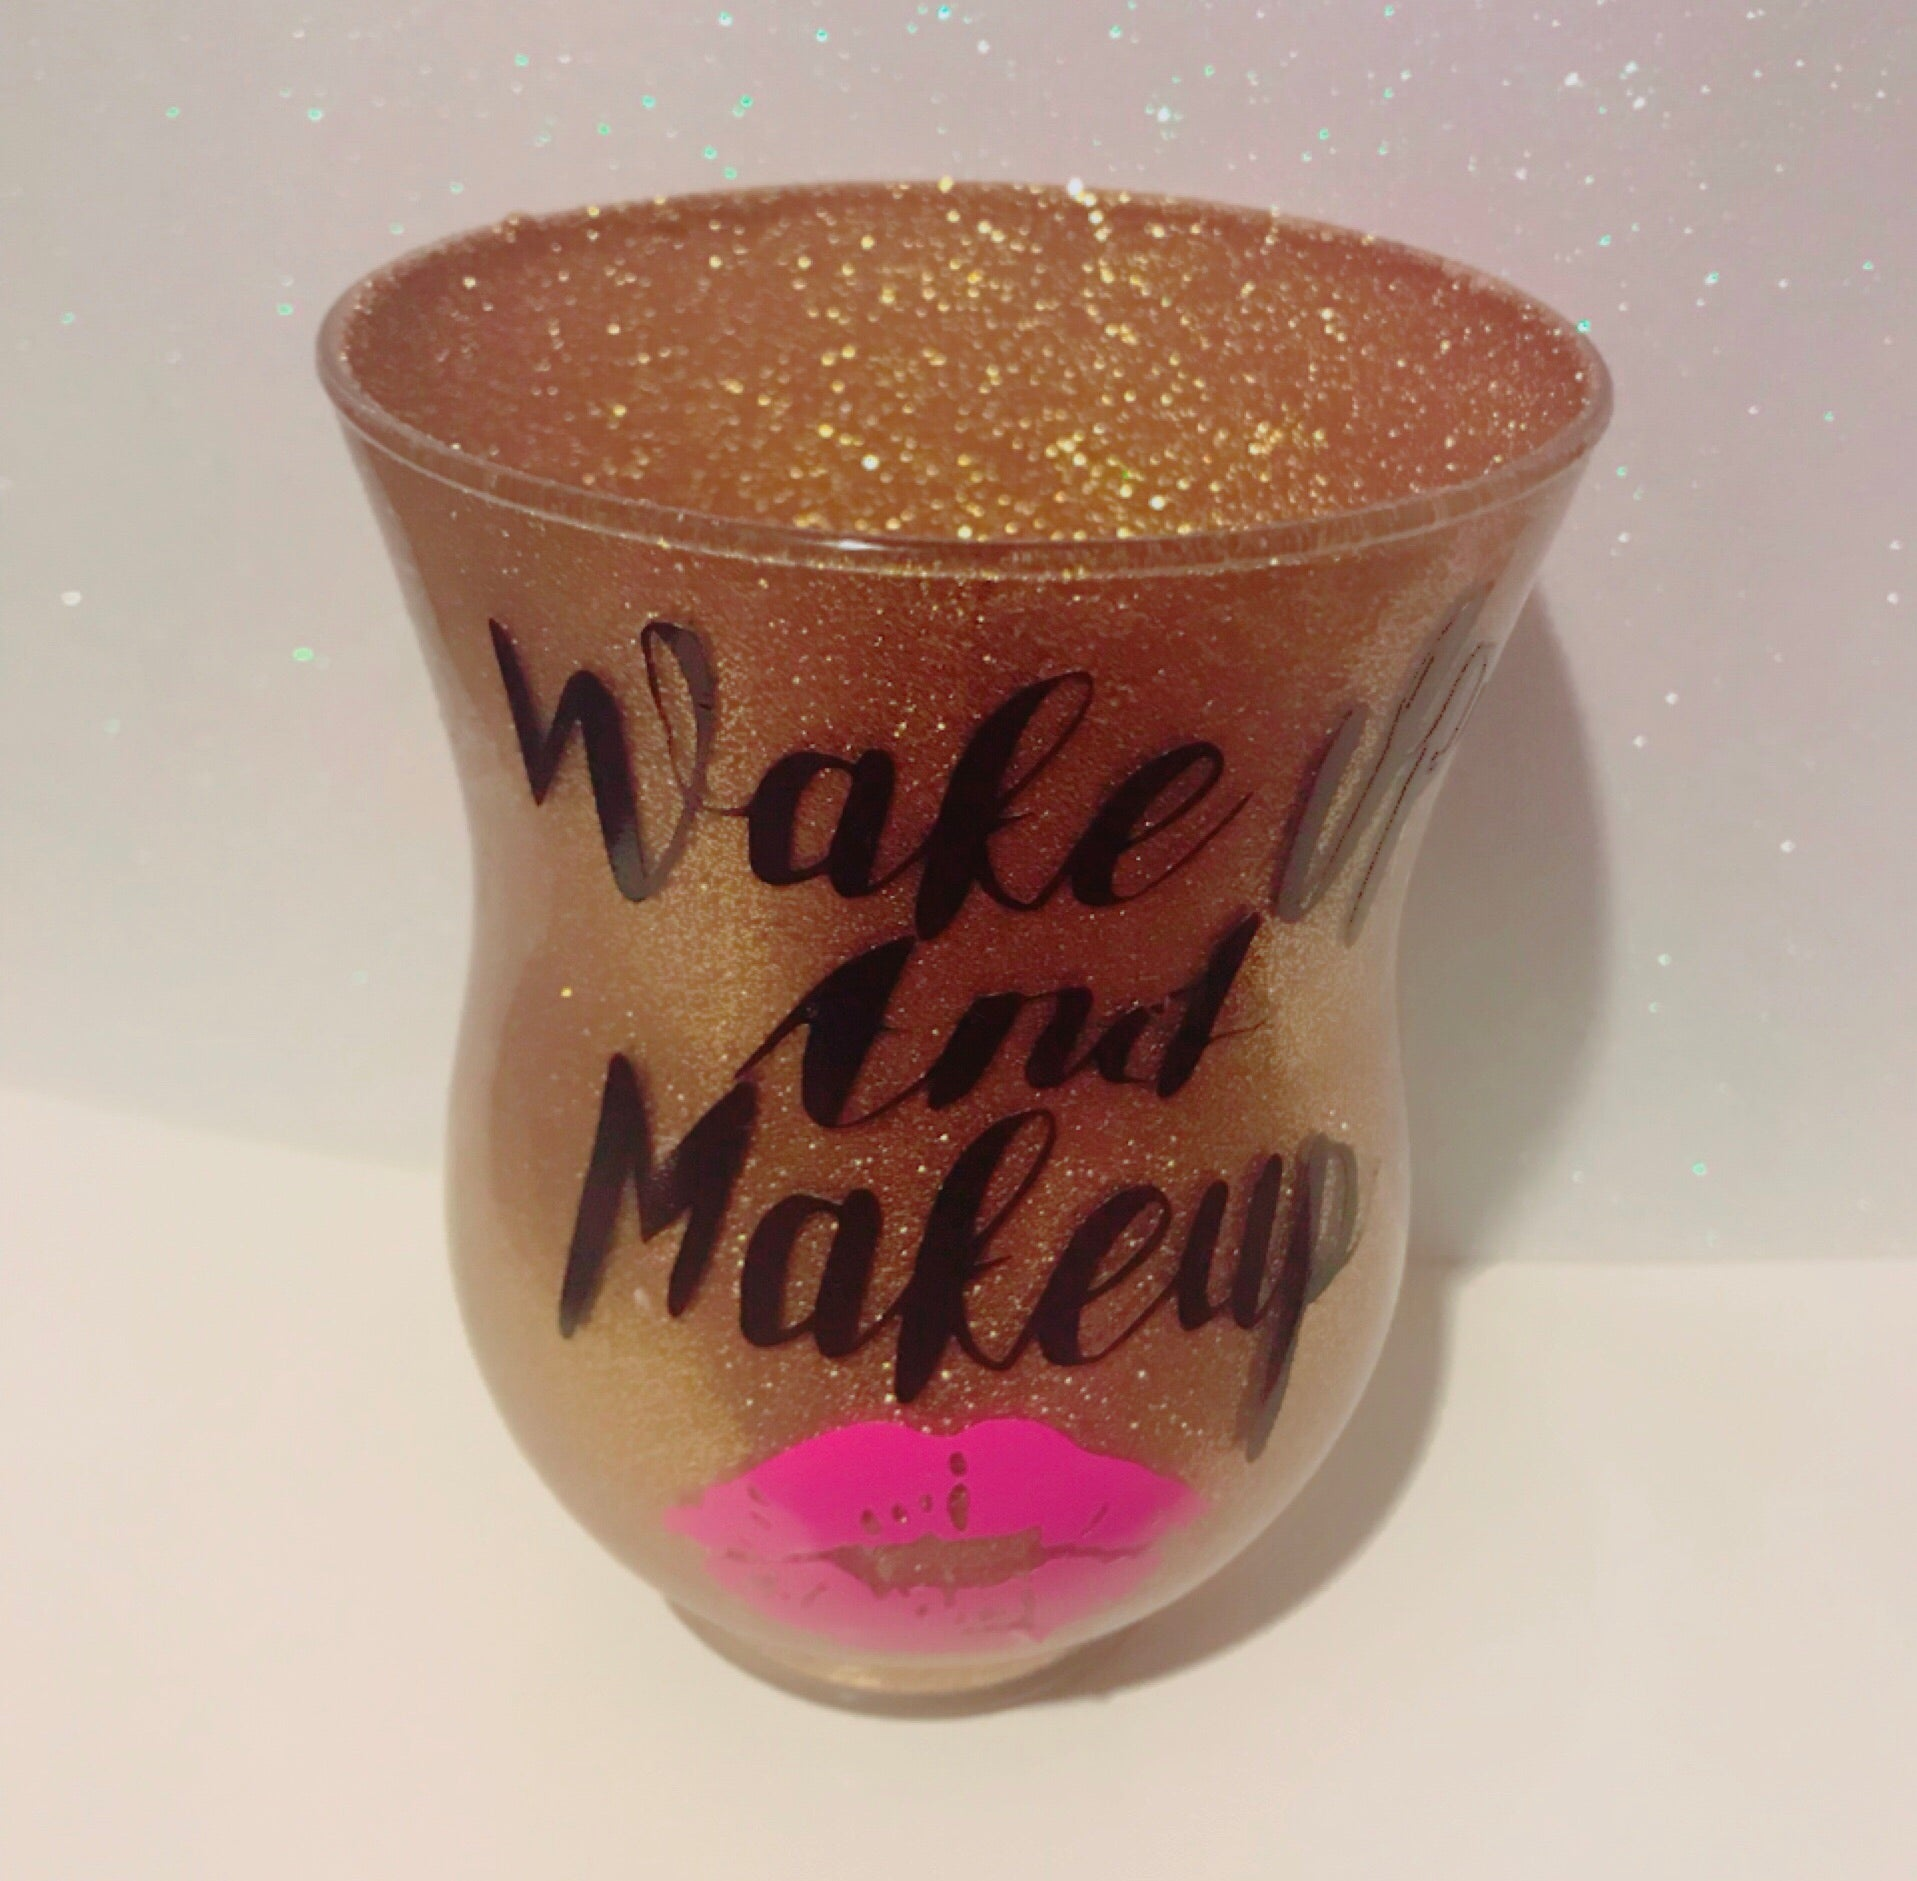 Wake up & Makeup in gold glitter brush holder